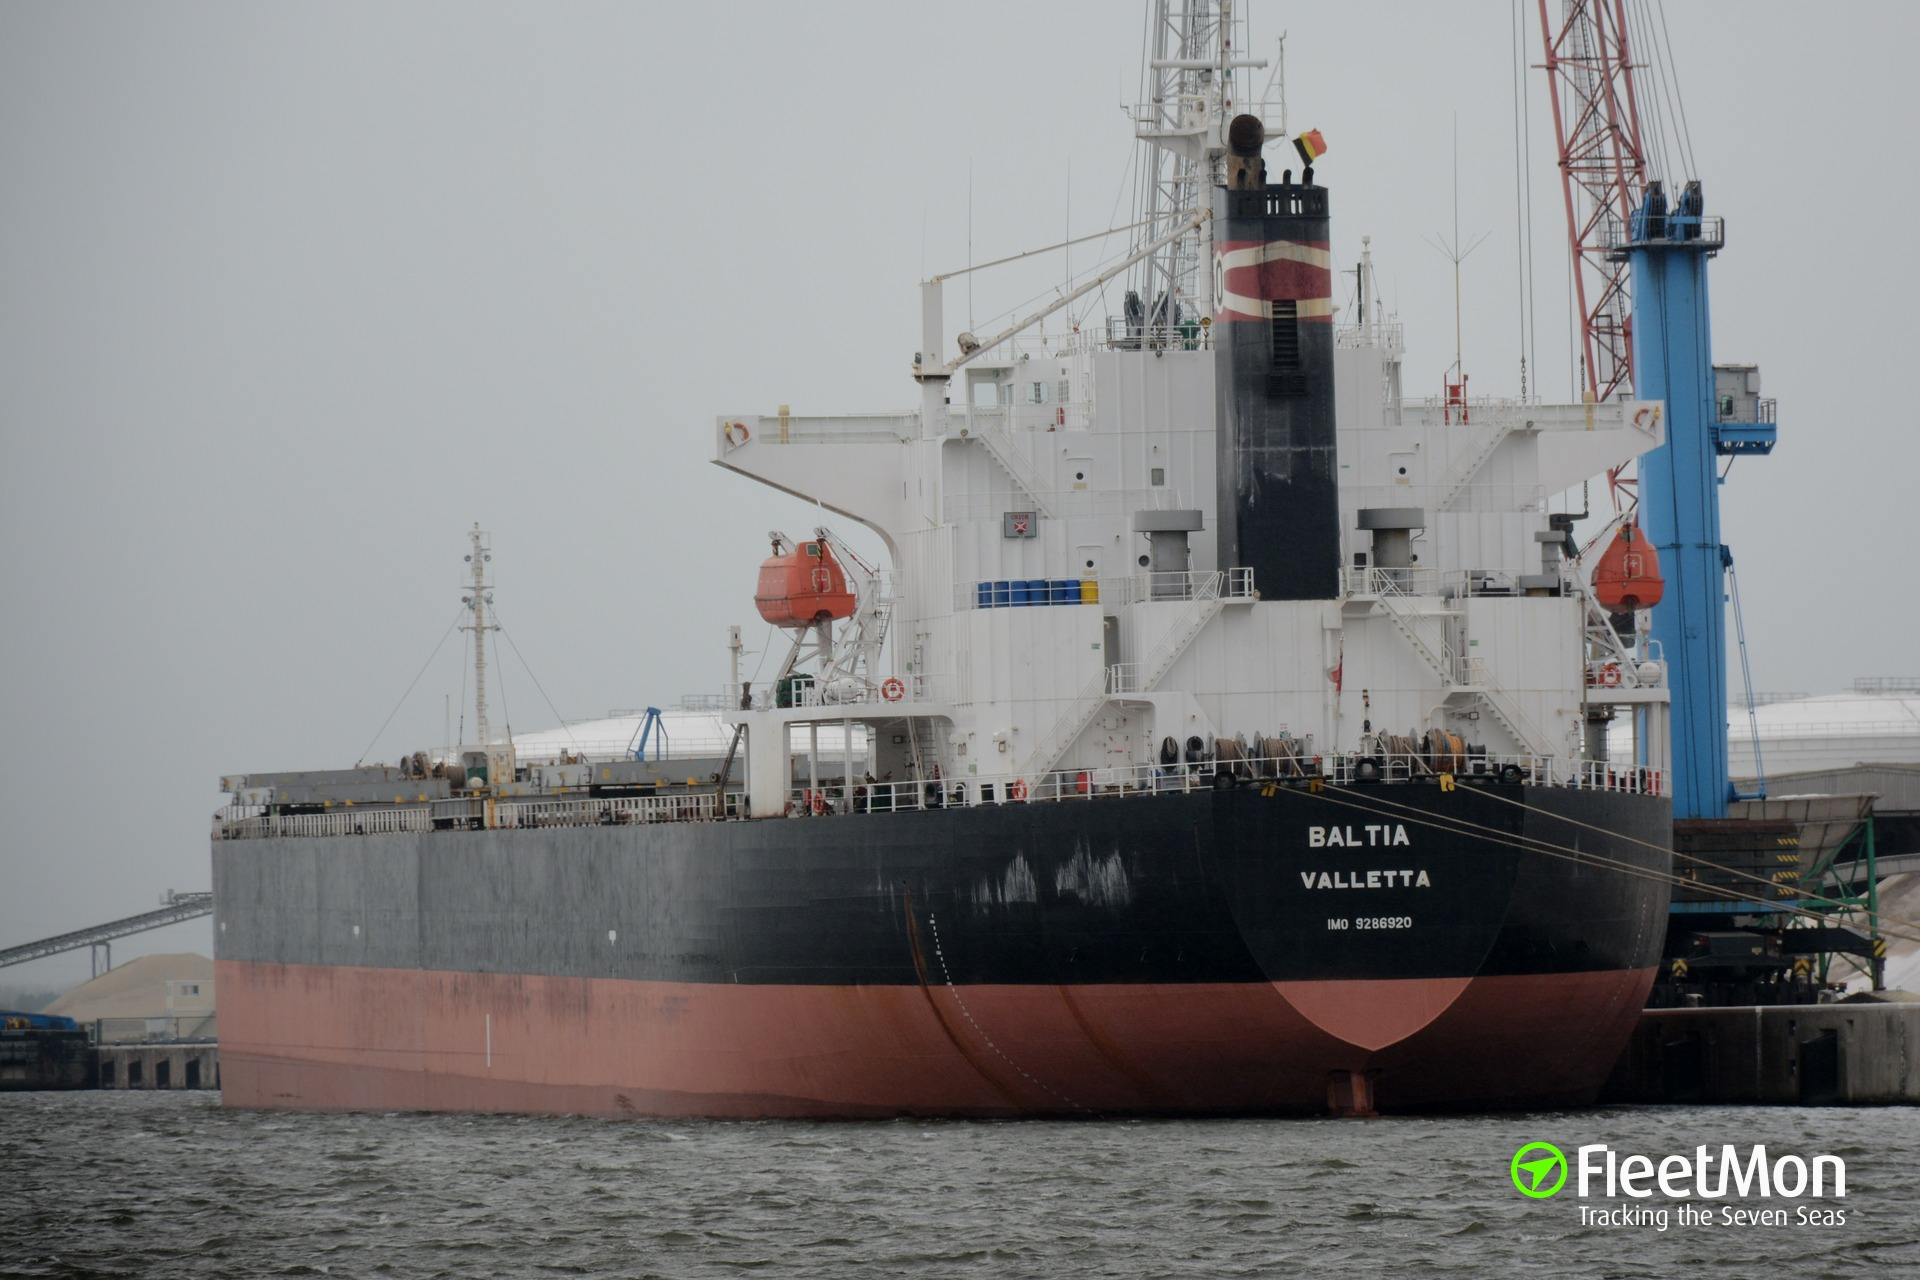 Bulk carrier BALTIA collided with Japanese fishing boat